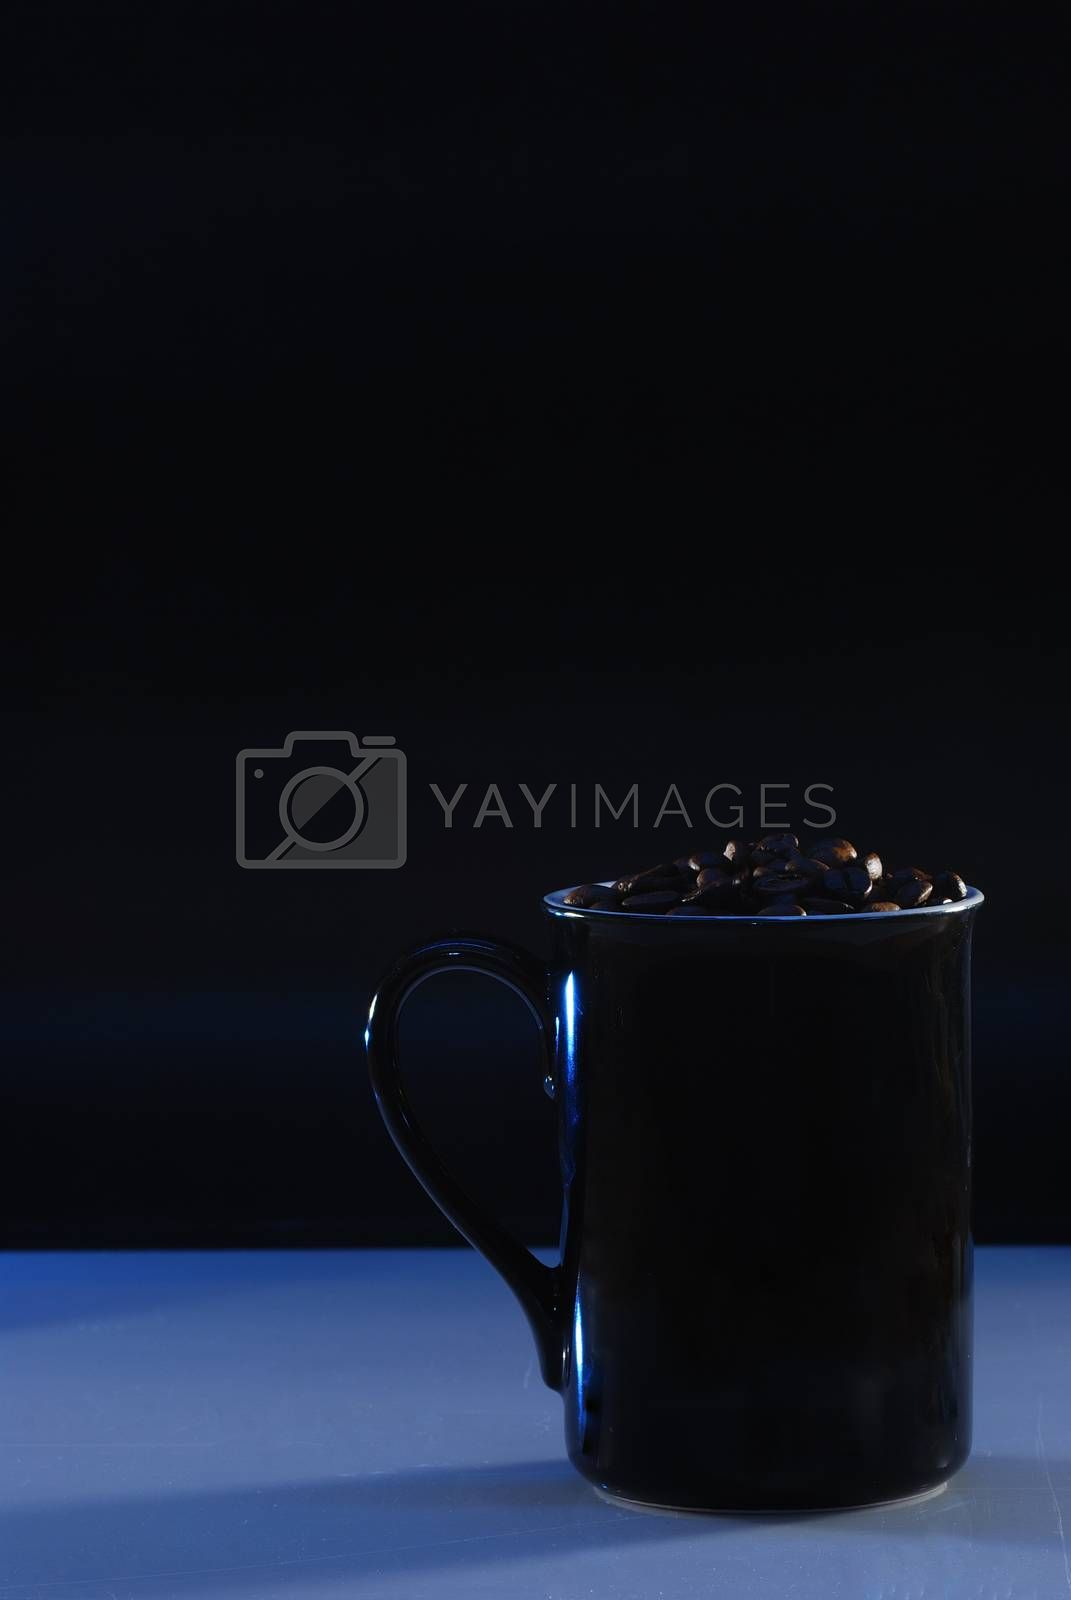 coffee cup with beans on blue surface and black background